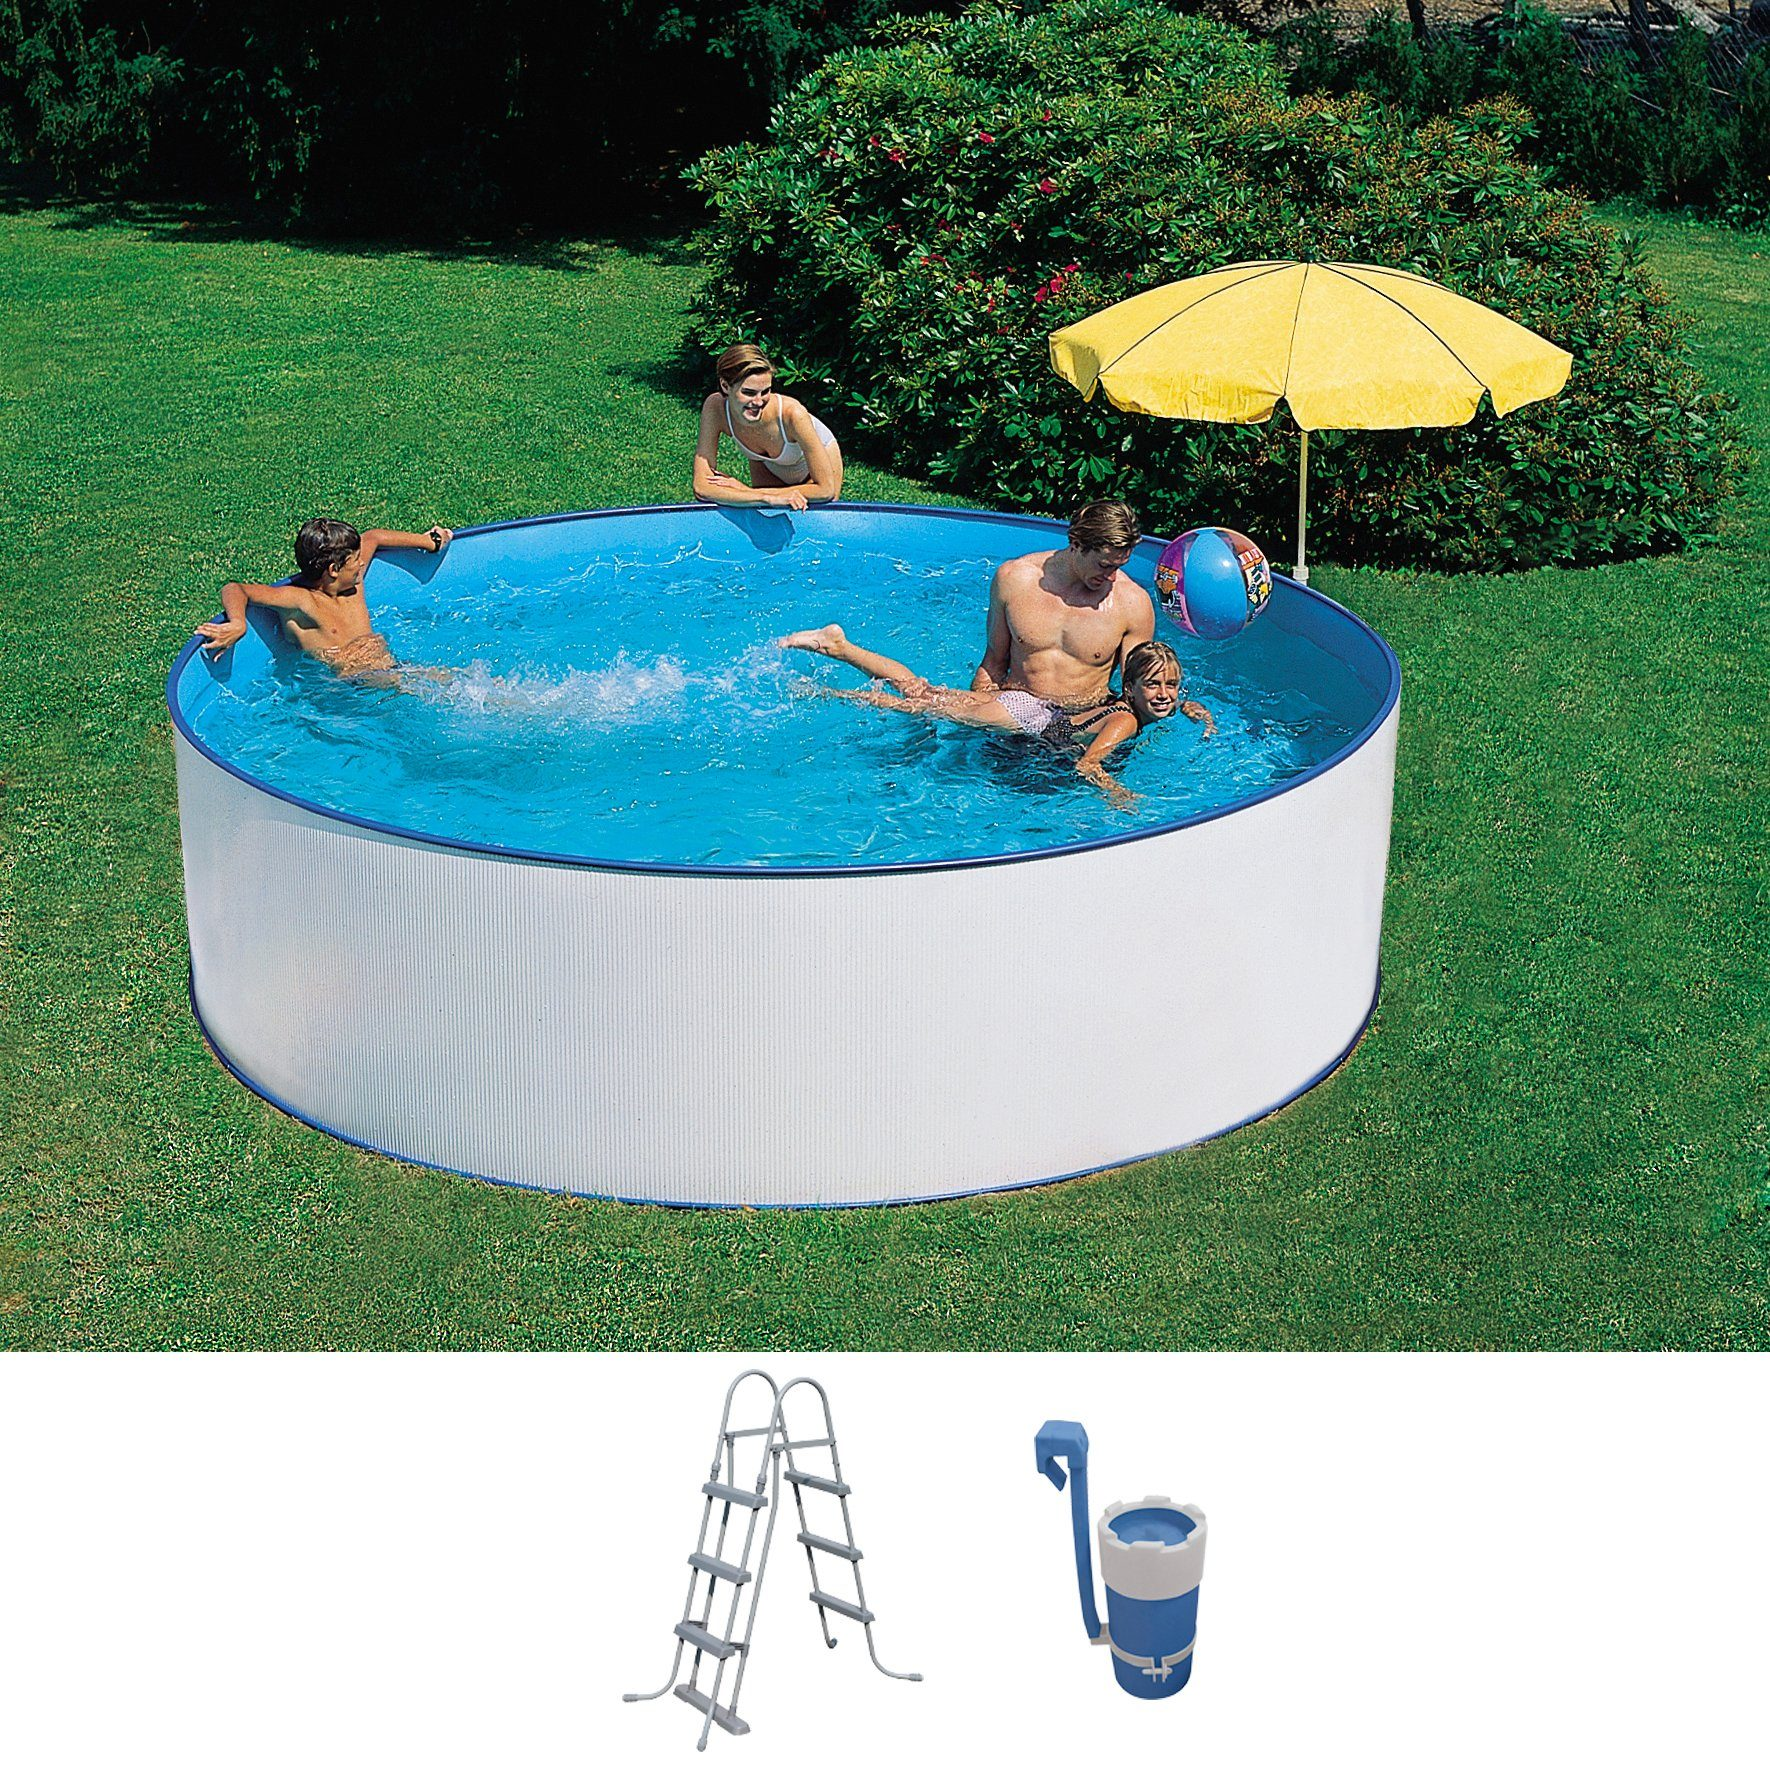 Solarplane Pool Rund 300 Summer Fun Set Rundpool 3 Tlg Øxh 300x90 Cm Otto